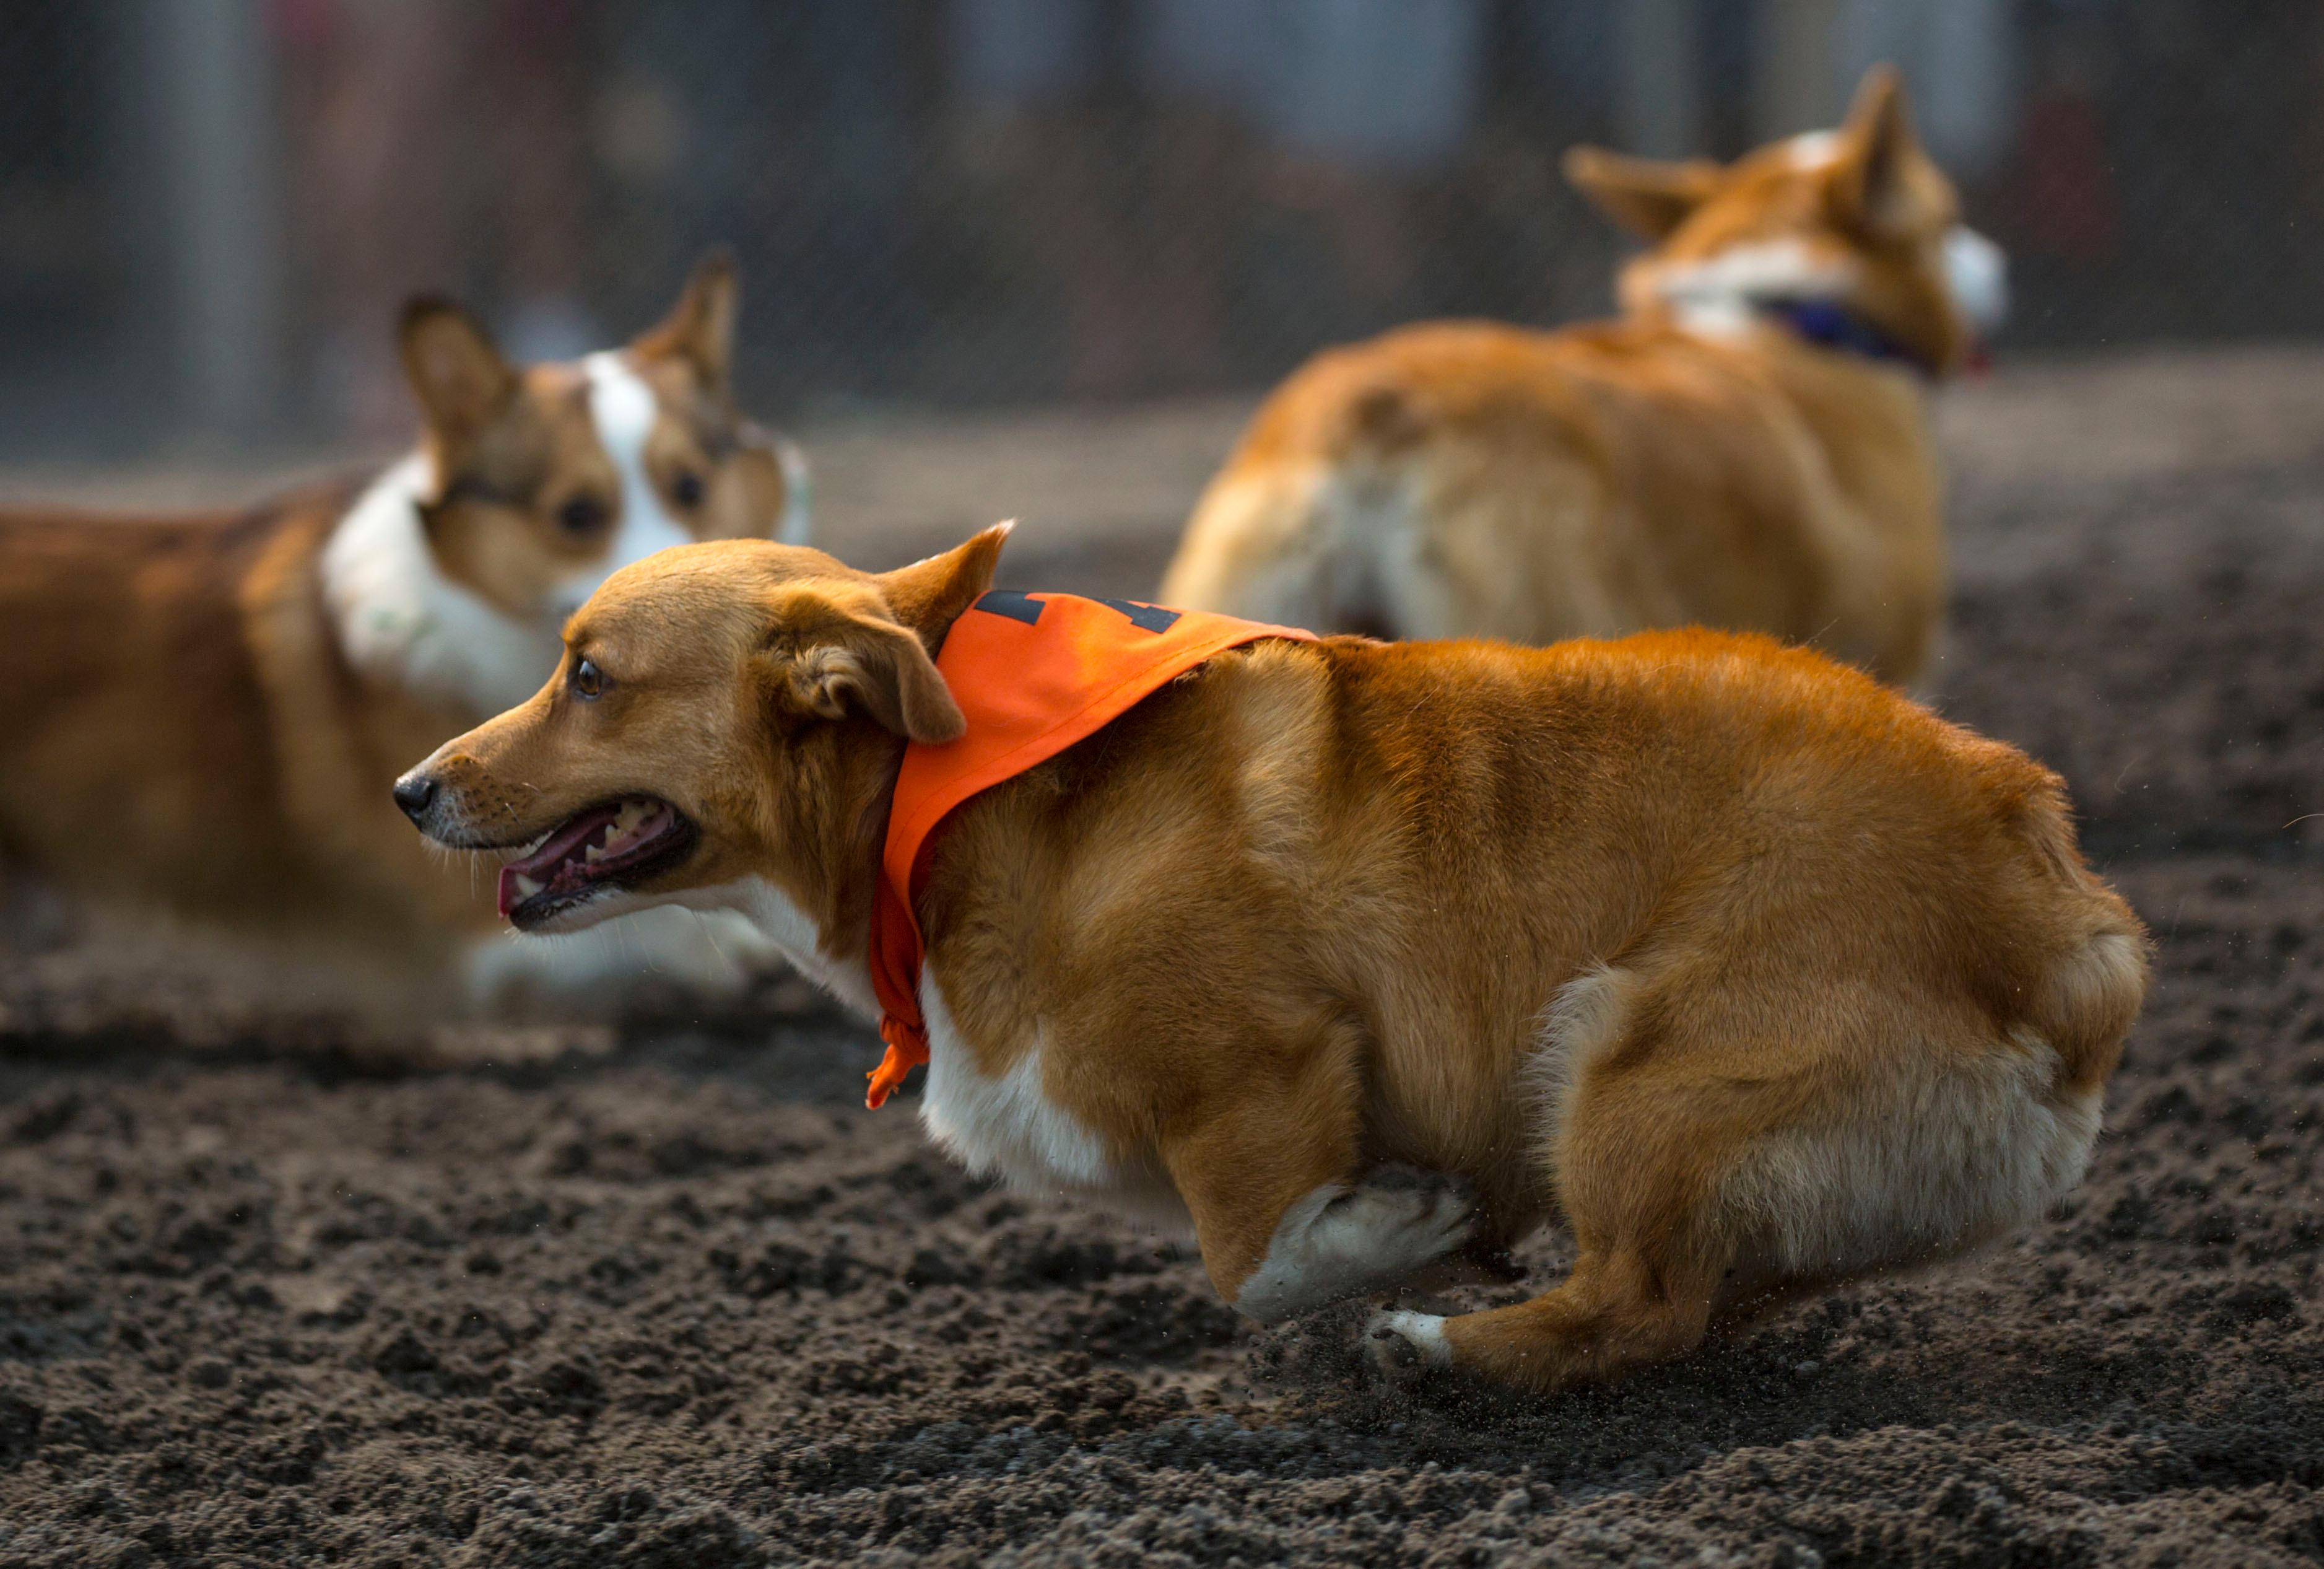 Dozens of Corgis took Emerald Downs by storm as they competed in the first annual Corgi Races. (Sy Bean / Seattle Refined)